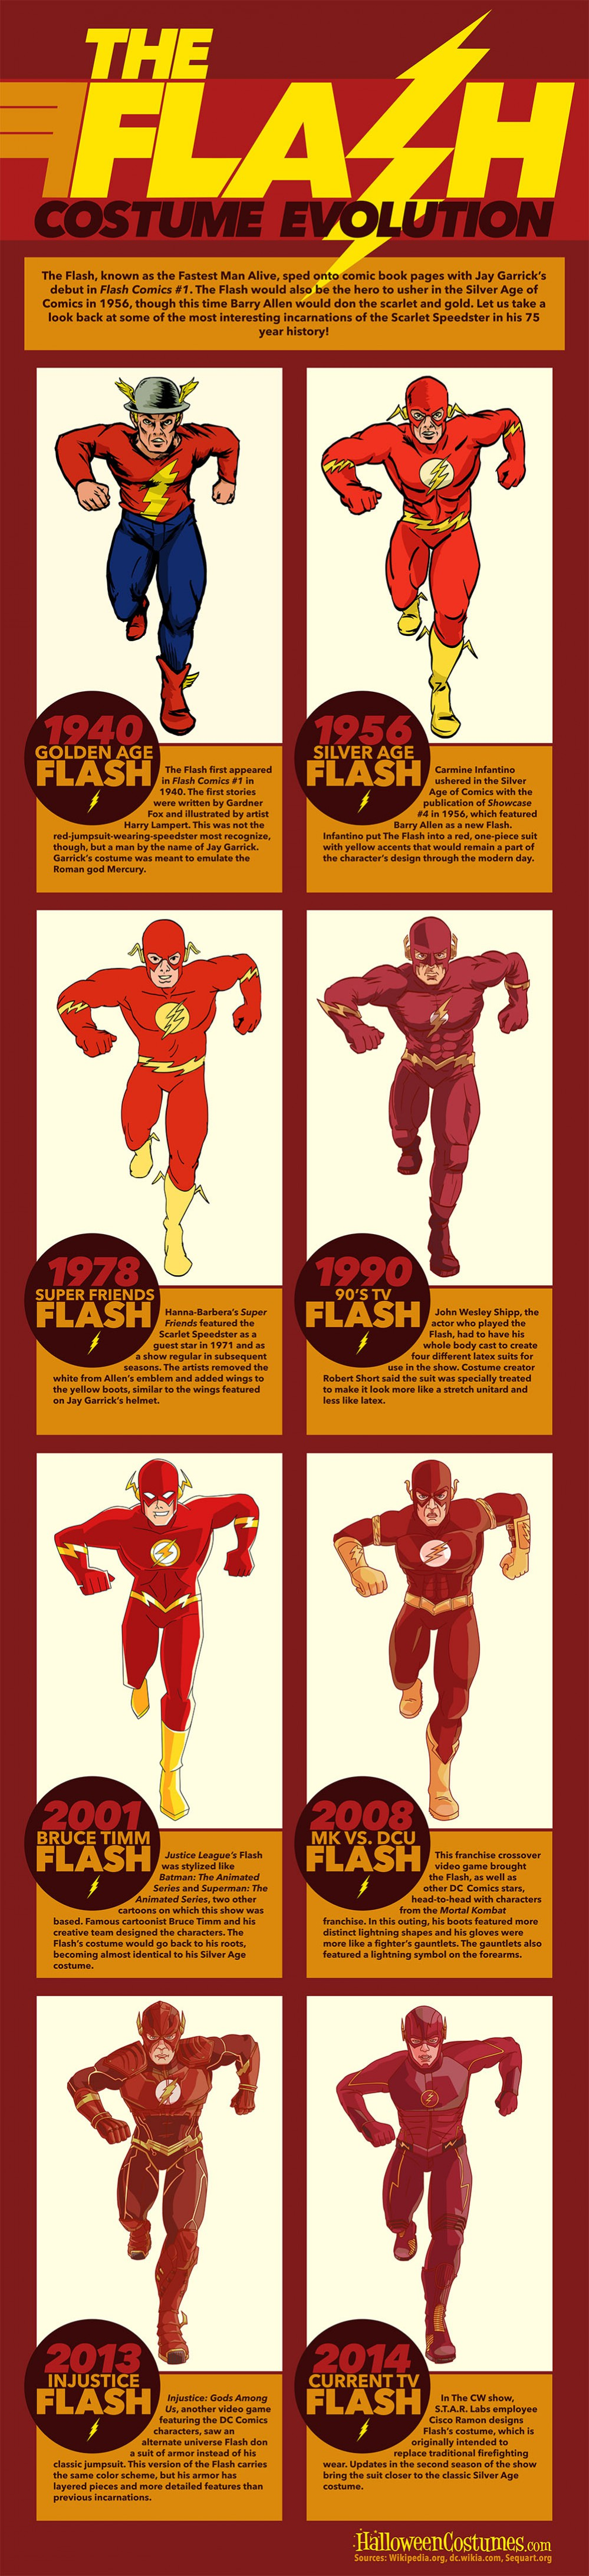 Flash-Evolution-Infographic